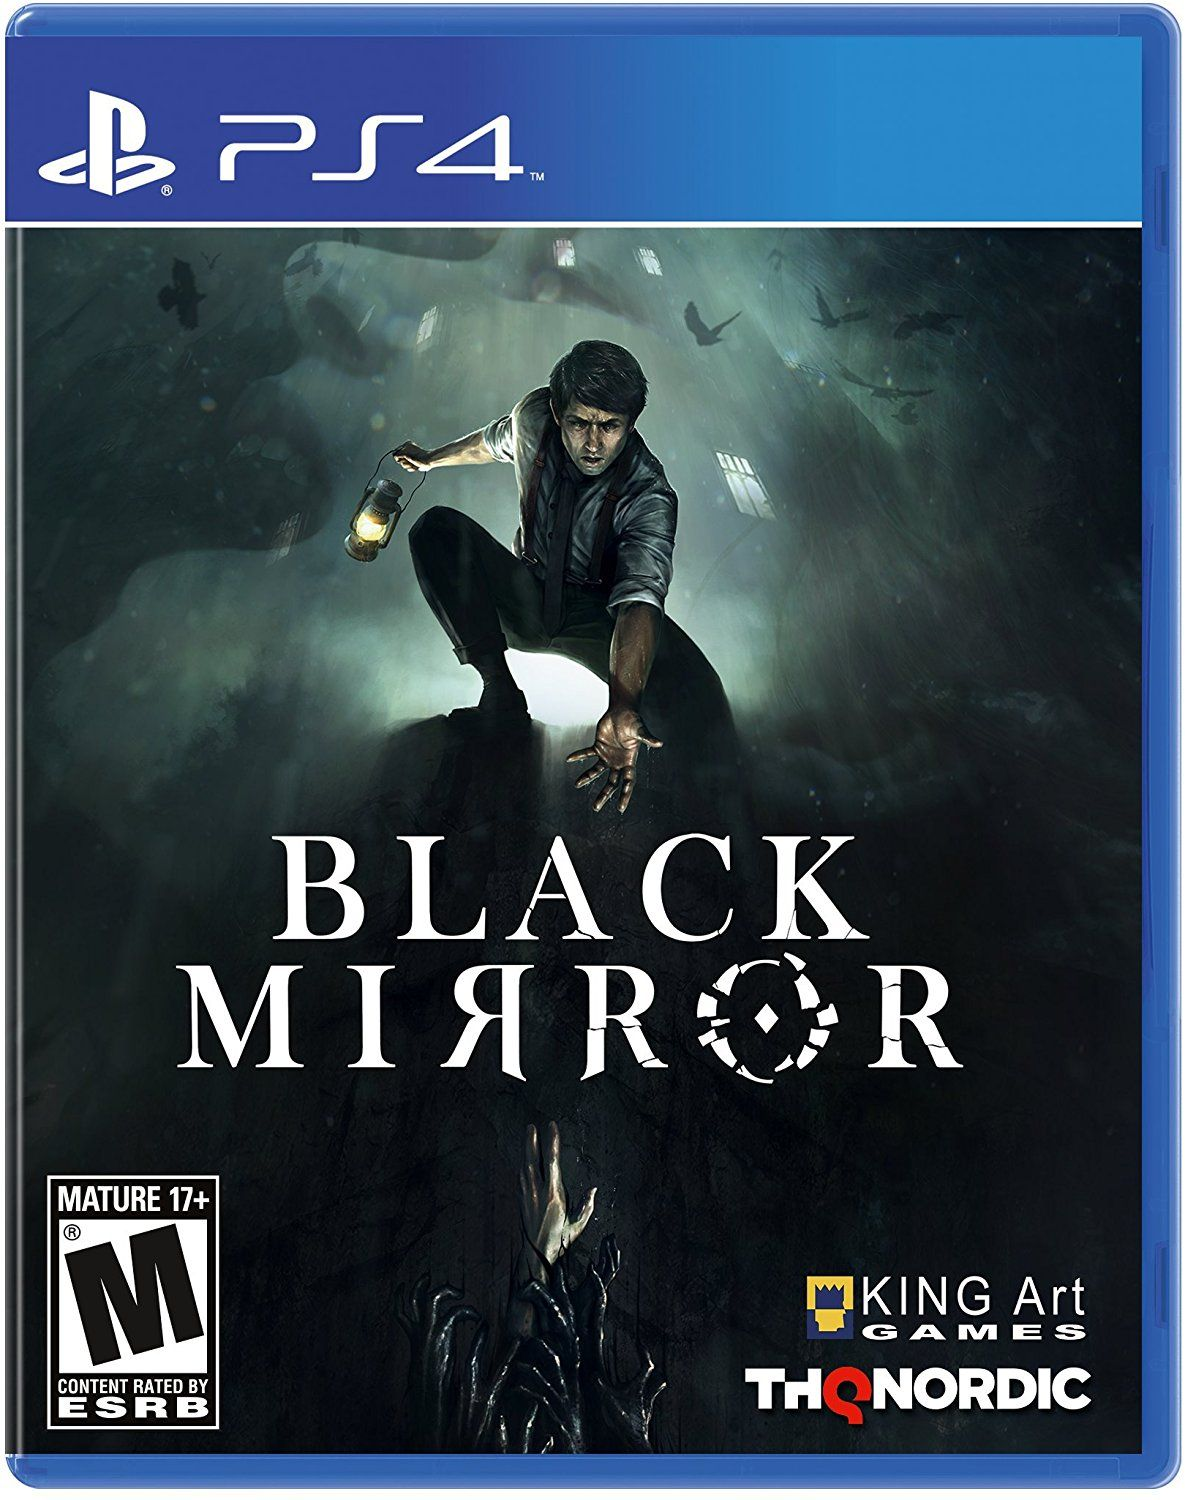 Mature 17 Content Rated By Esrb Roblox Black Mirror Game Cover Ps4 Black Mirror Mirror Game Playstation 4